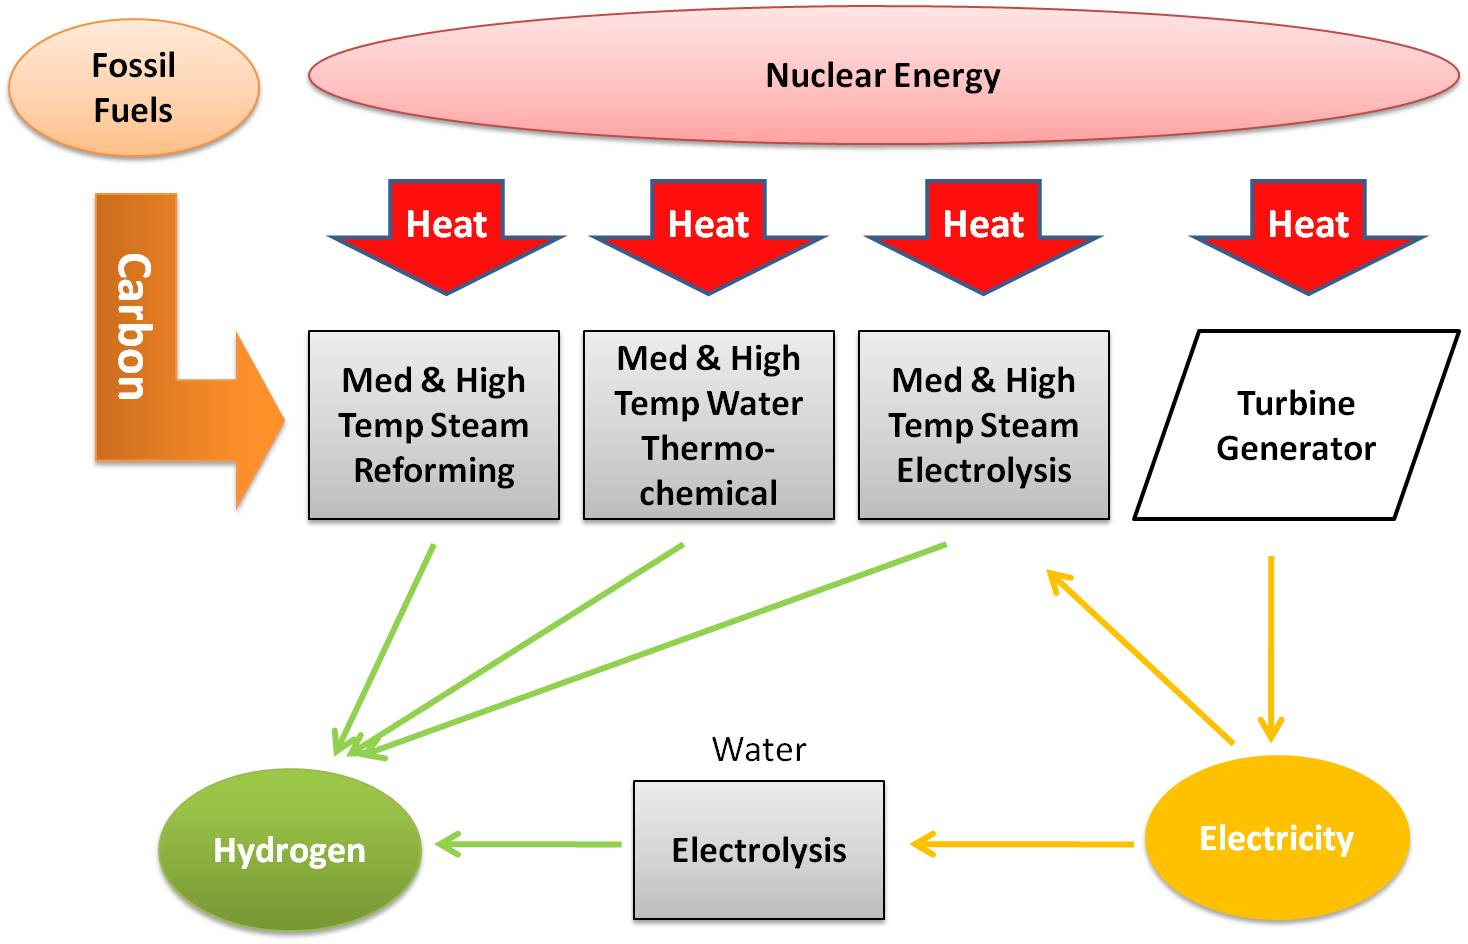 hight resolution of 3 proposed hydrogen production methods by nuclear energy 1